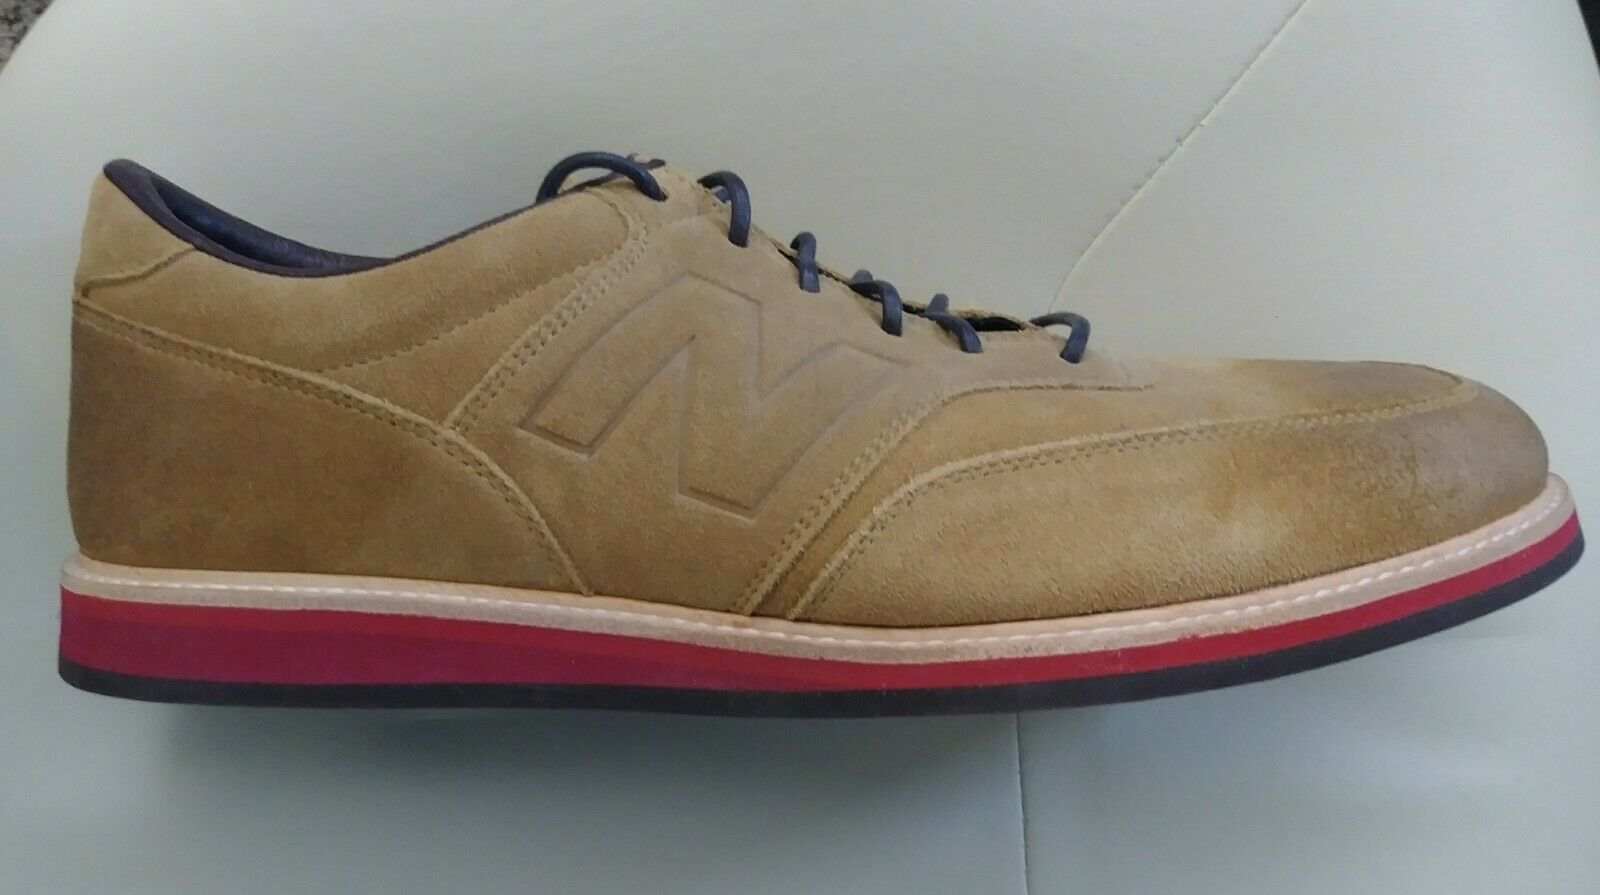 New Balance Men's 1100v1 Walking shoes - Size 13, X-Wide (4E) Brown Maroon sole